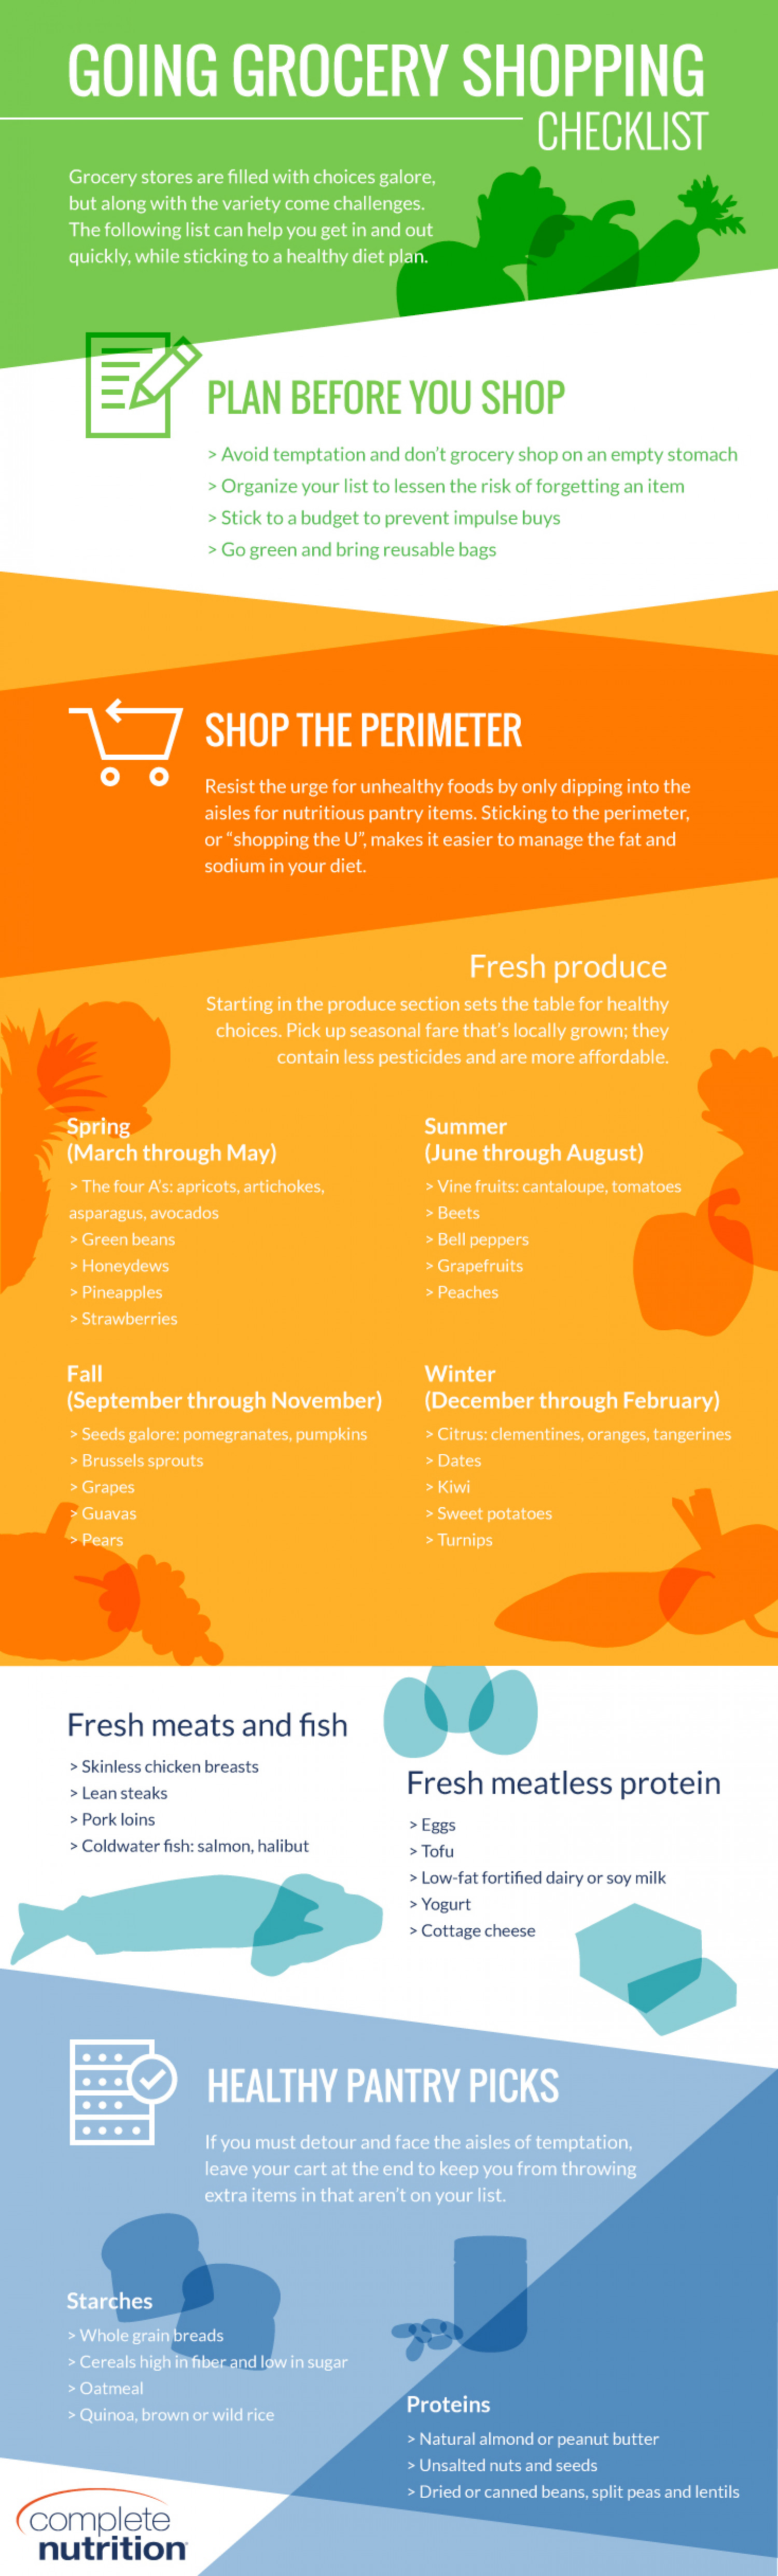 Going Grocery Shopping Checklist Infographic